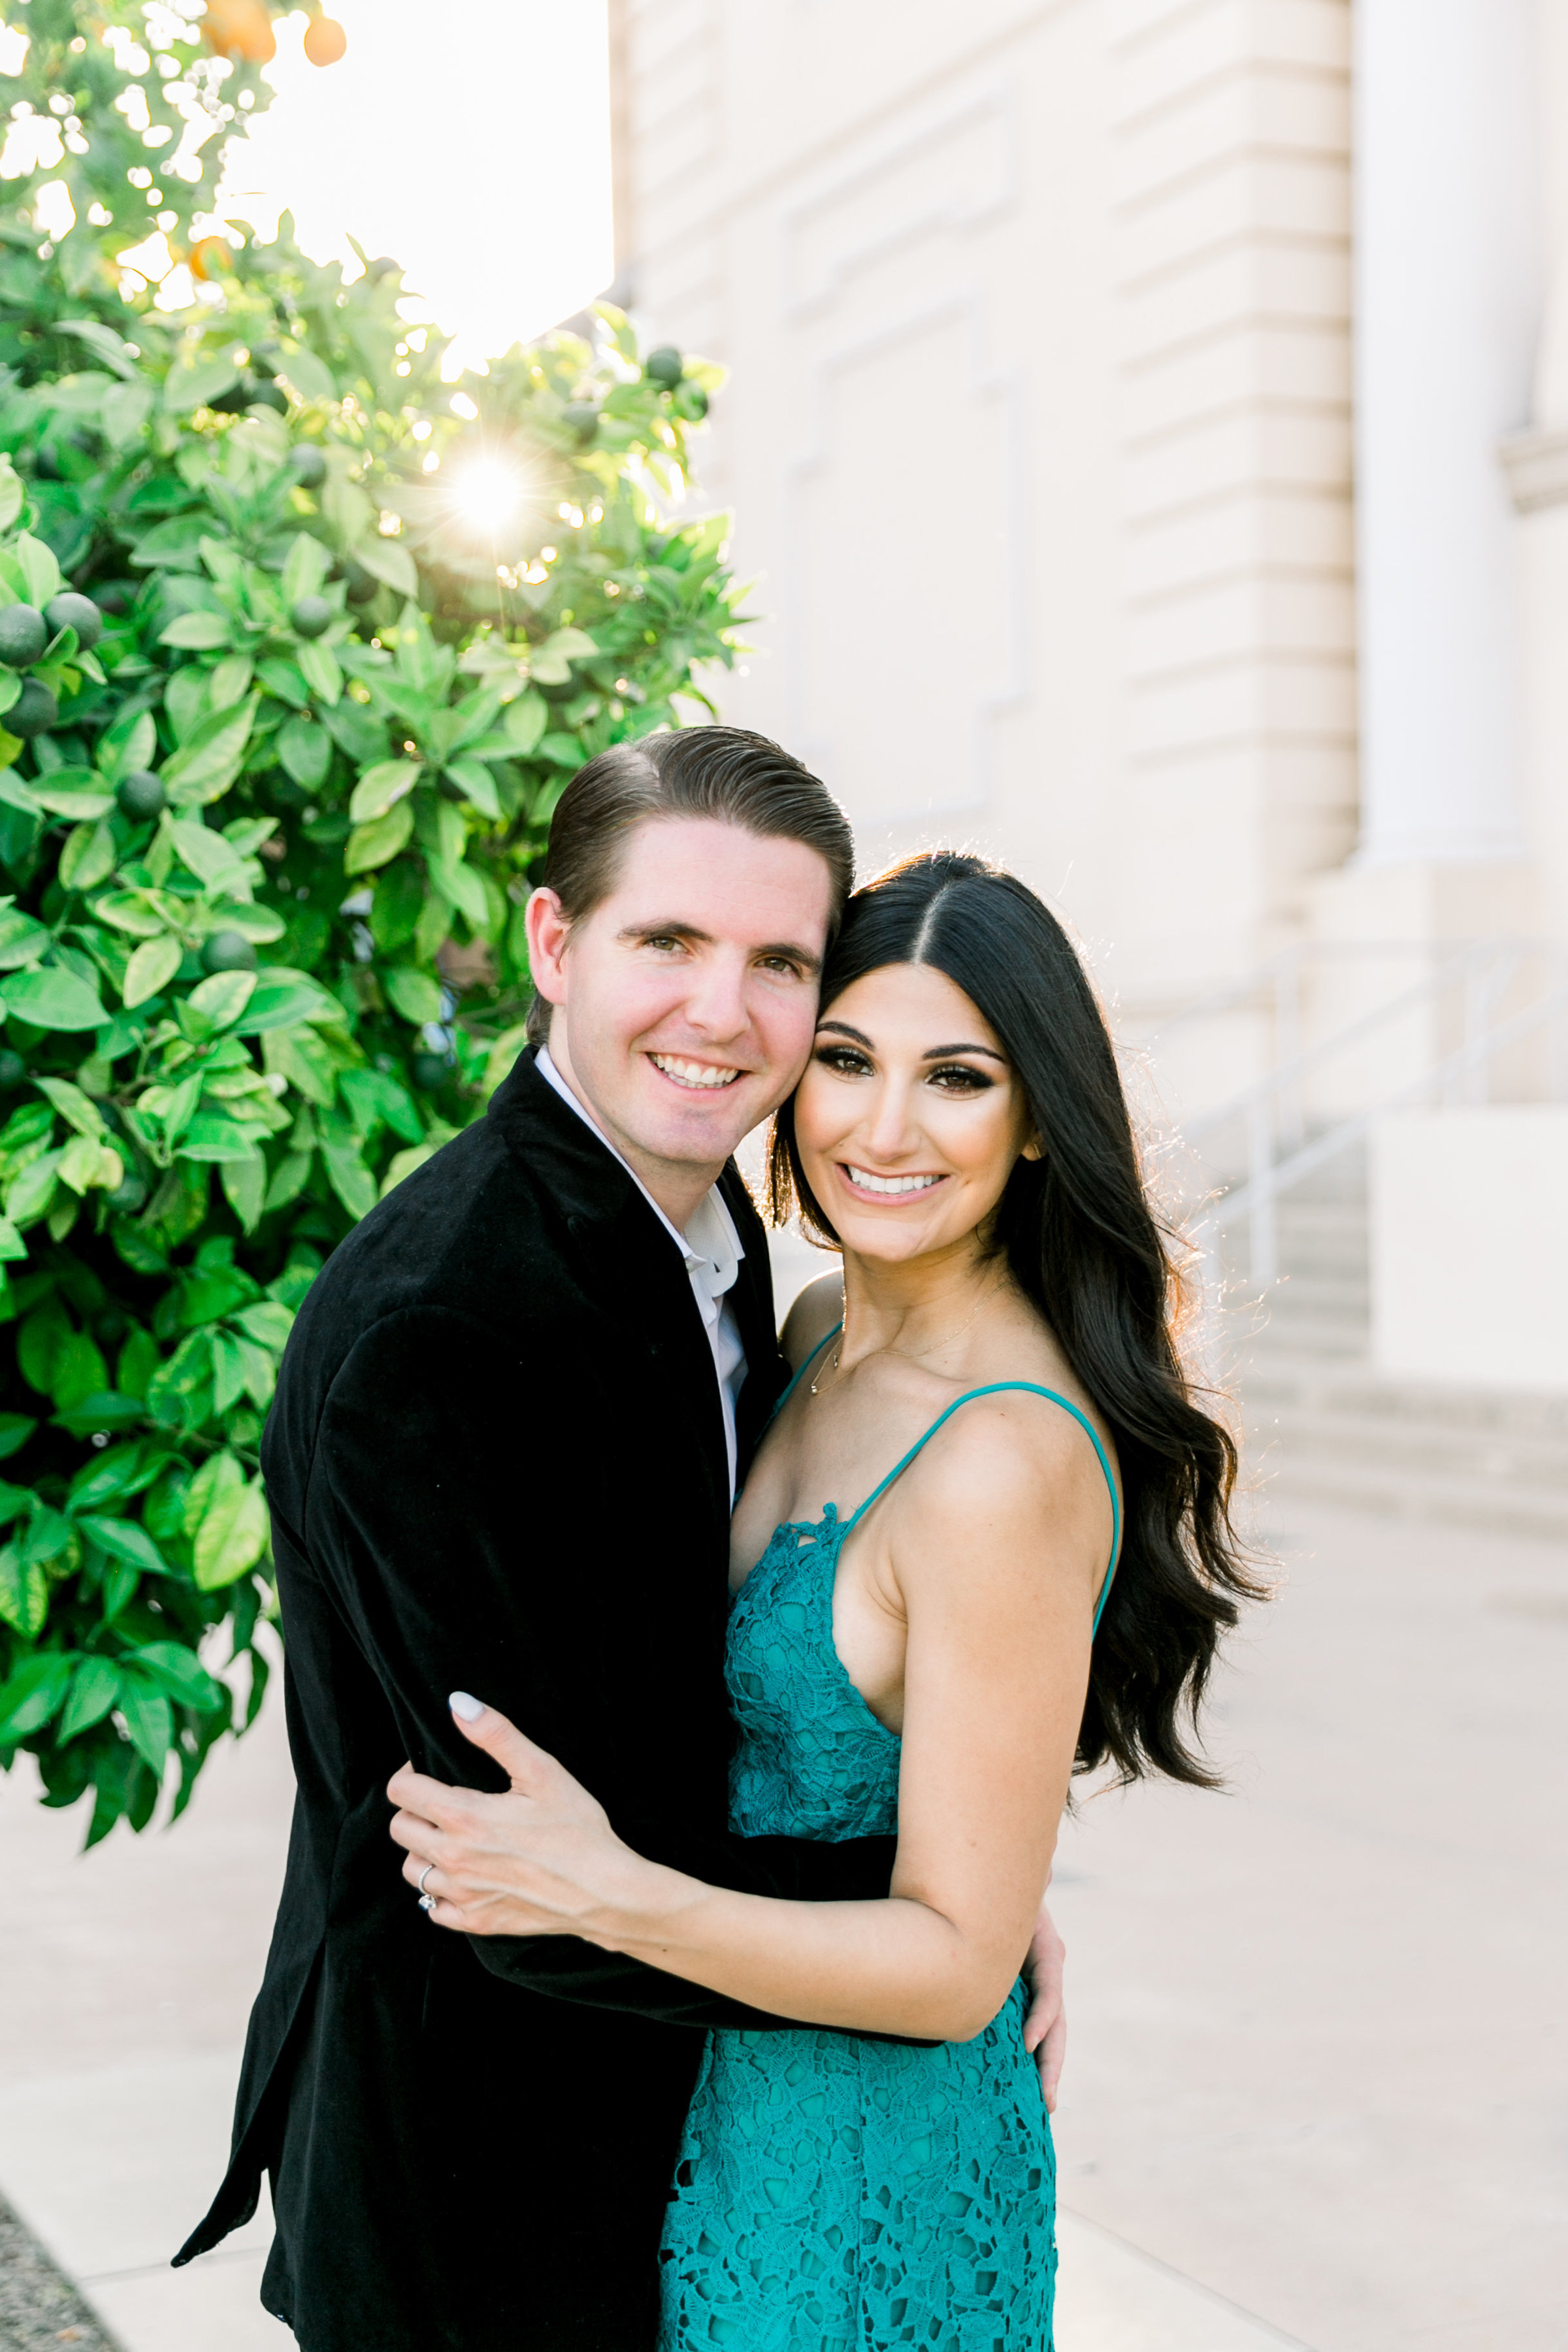 Karlie Colleen Photography - Arizona Engagement City Shoot - Kim & Tim-178